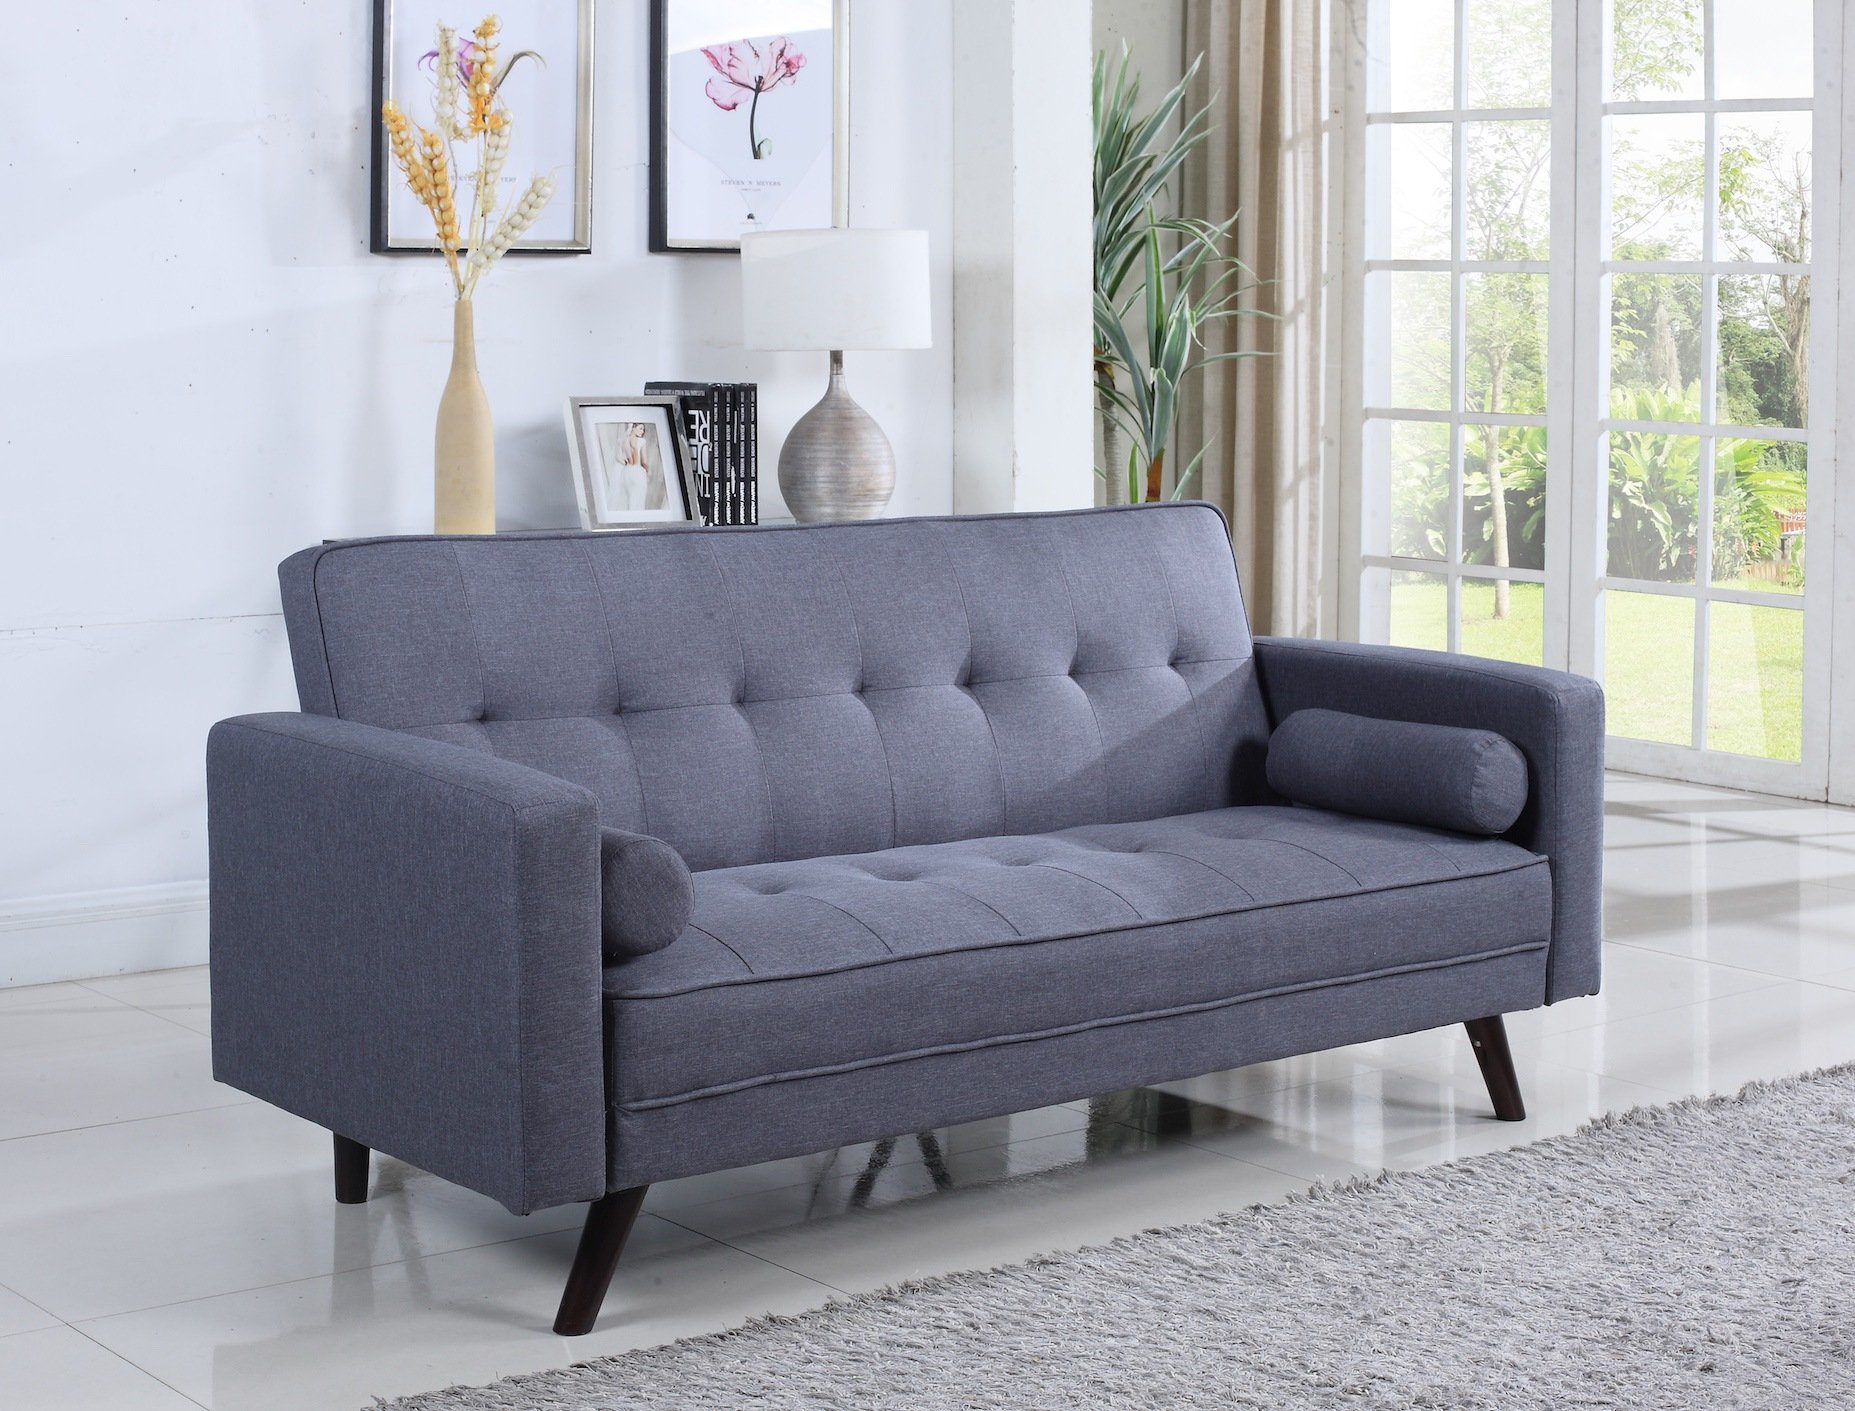 Home Source Sofabed